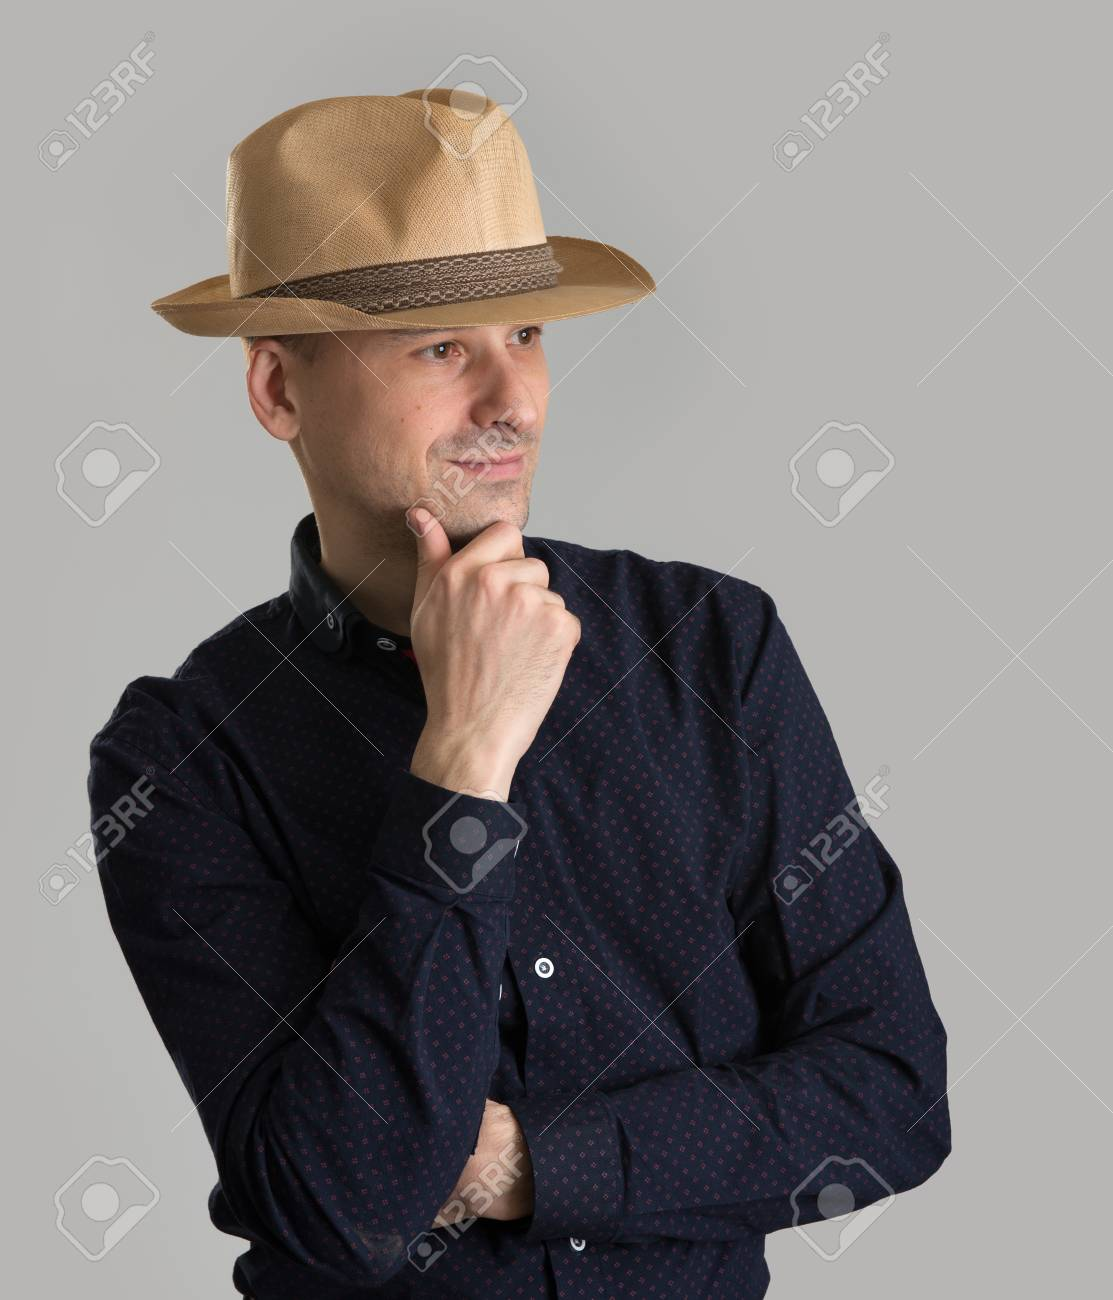 smiling man wearing fedora hat isolated over grey Stock Photo - 48205822 c7dbf74bf6c3